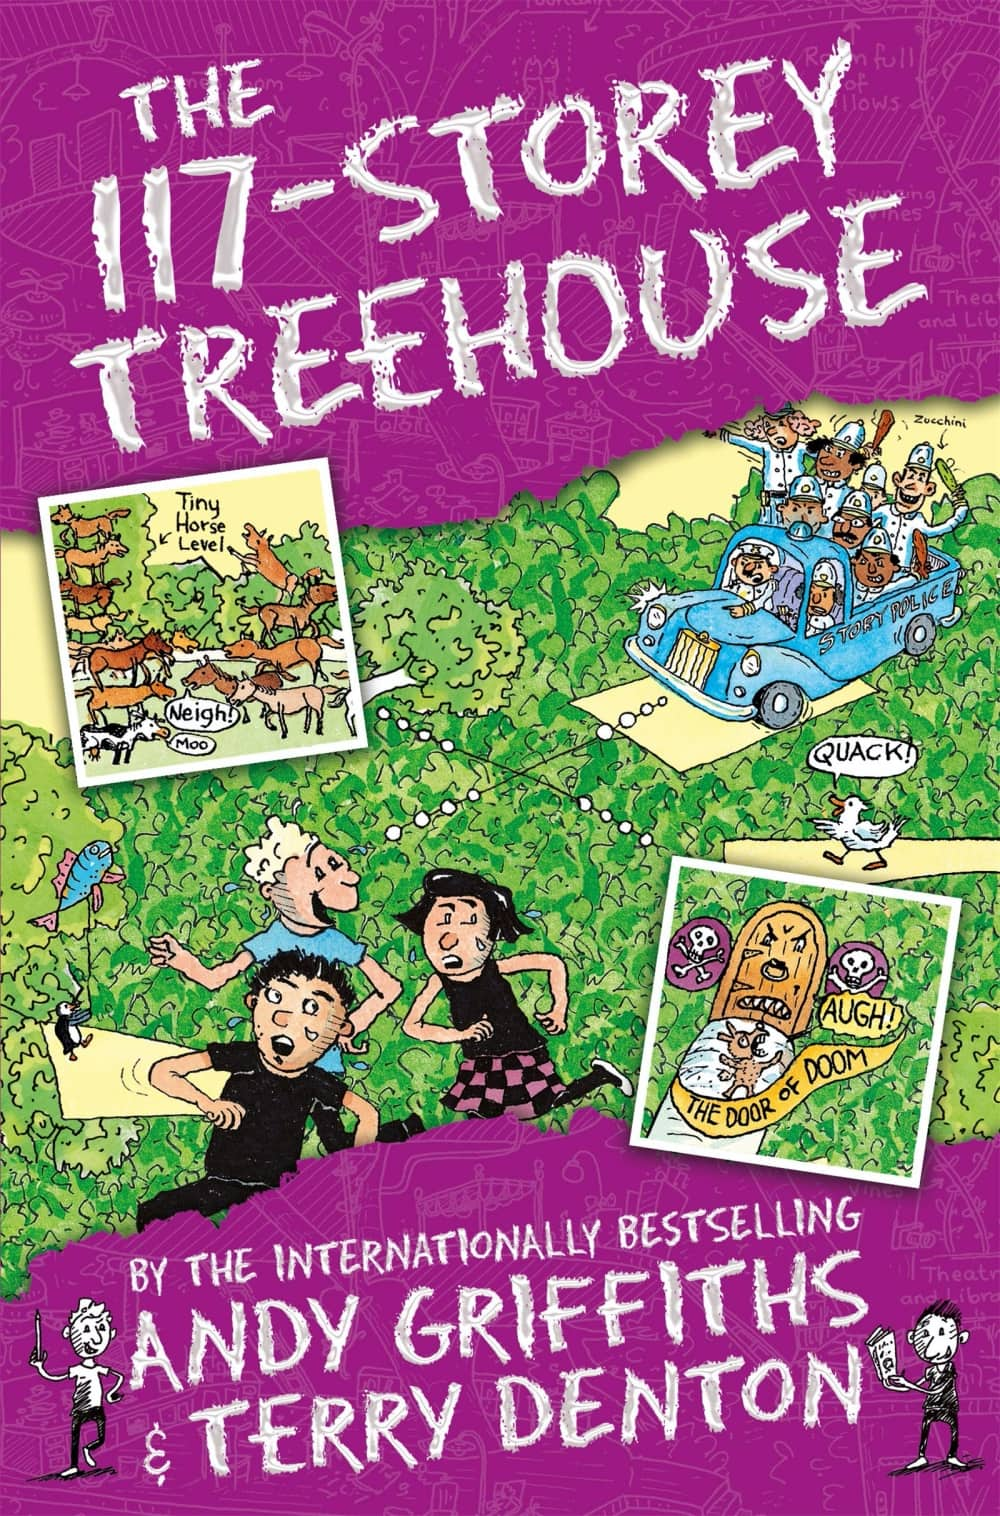 The 117 Storey Treehouse